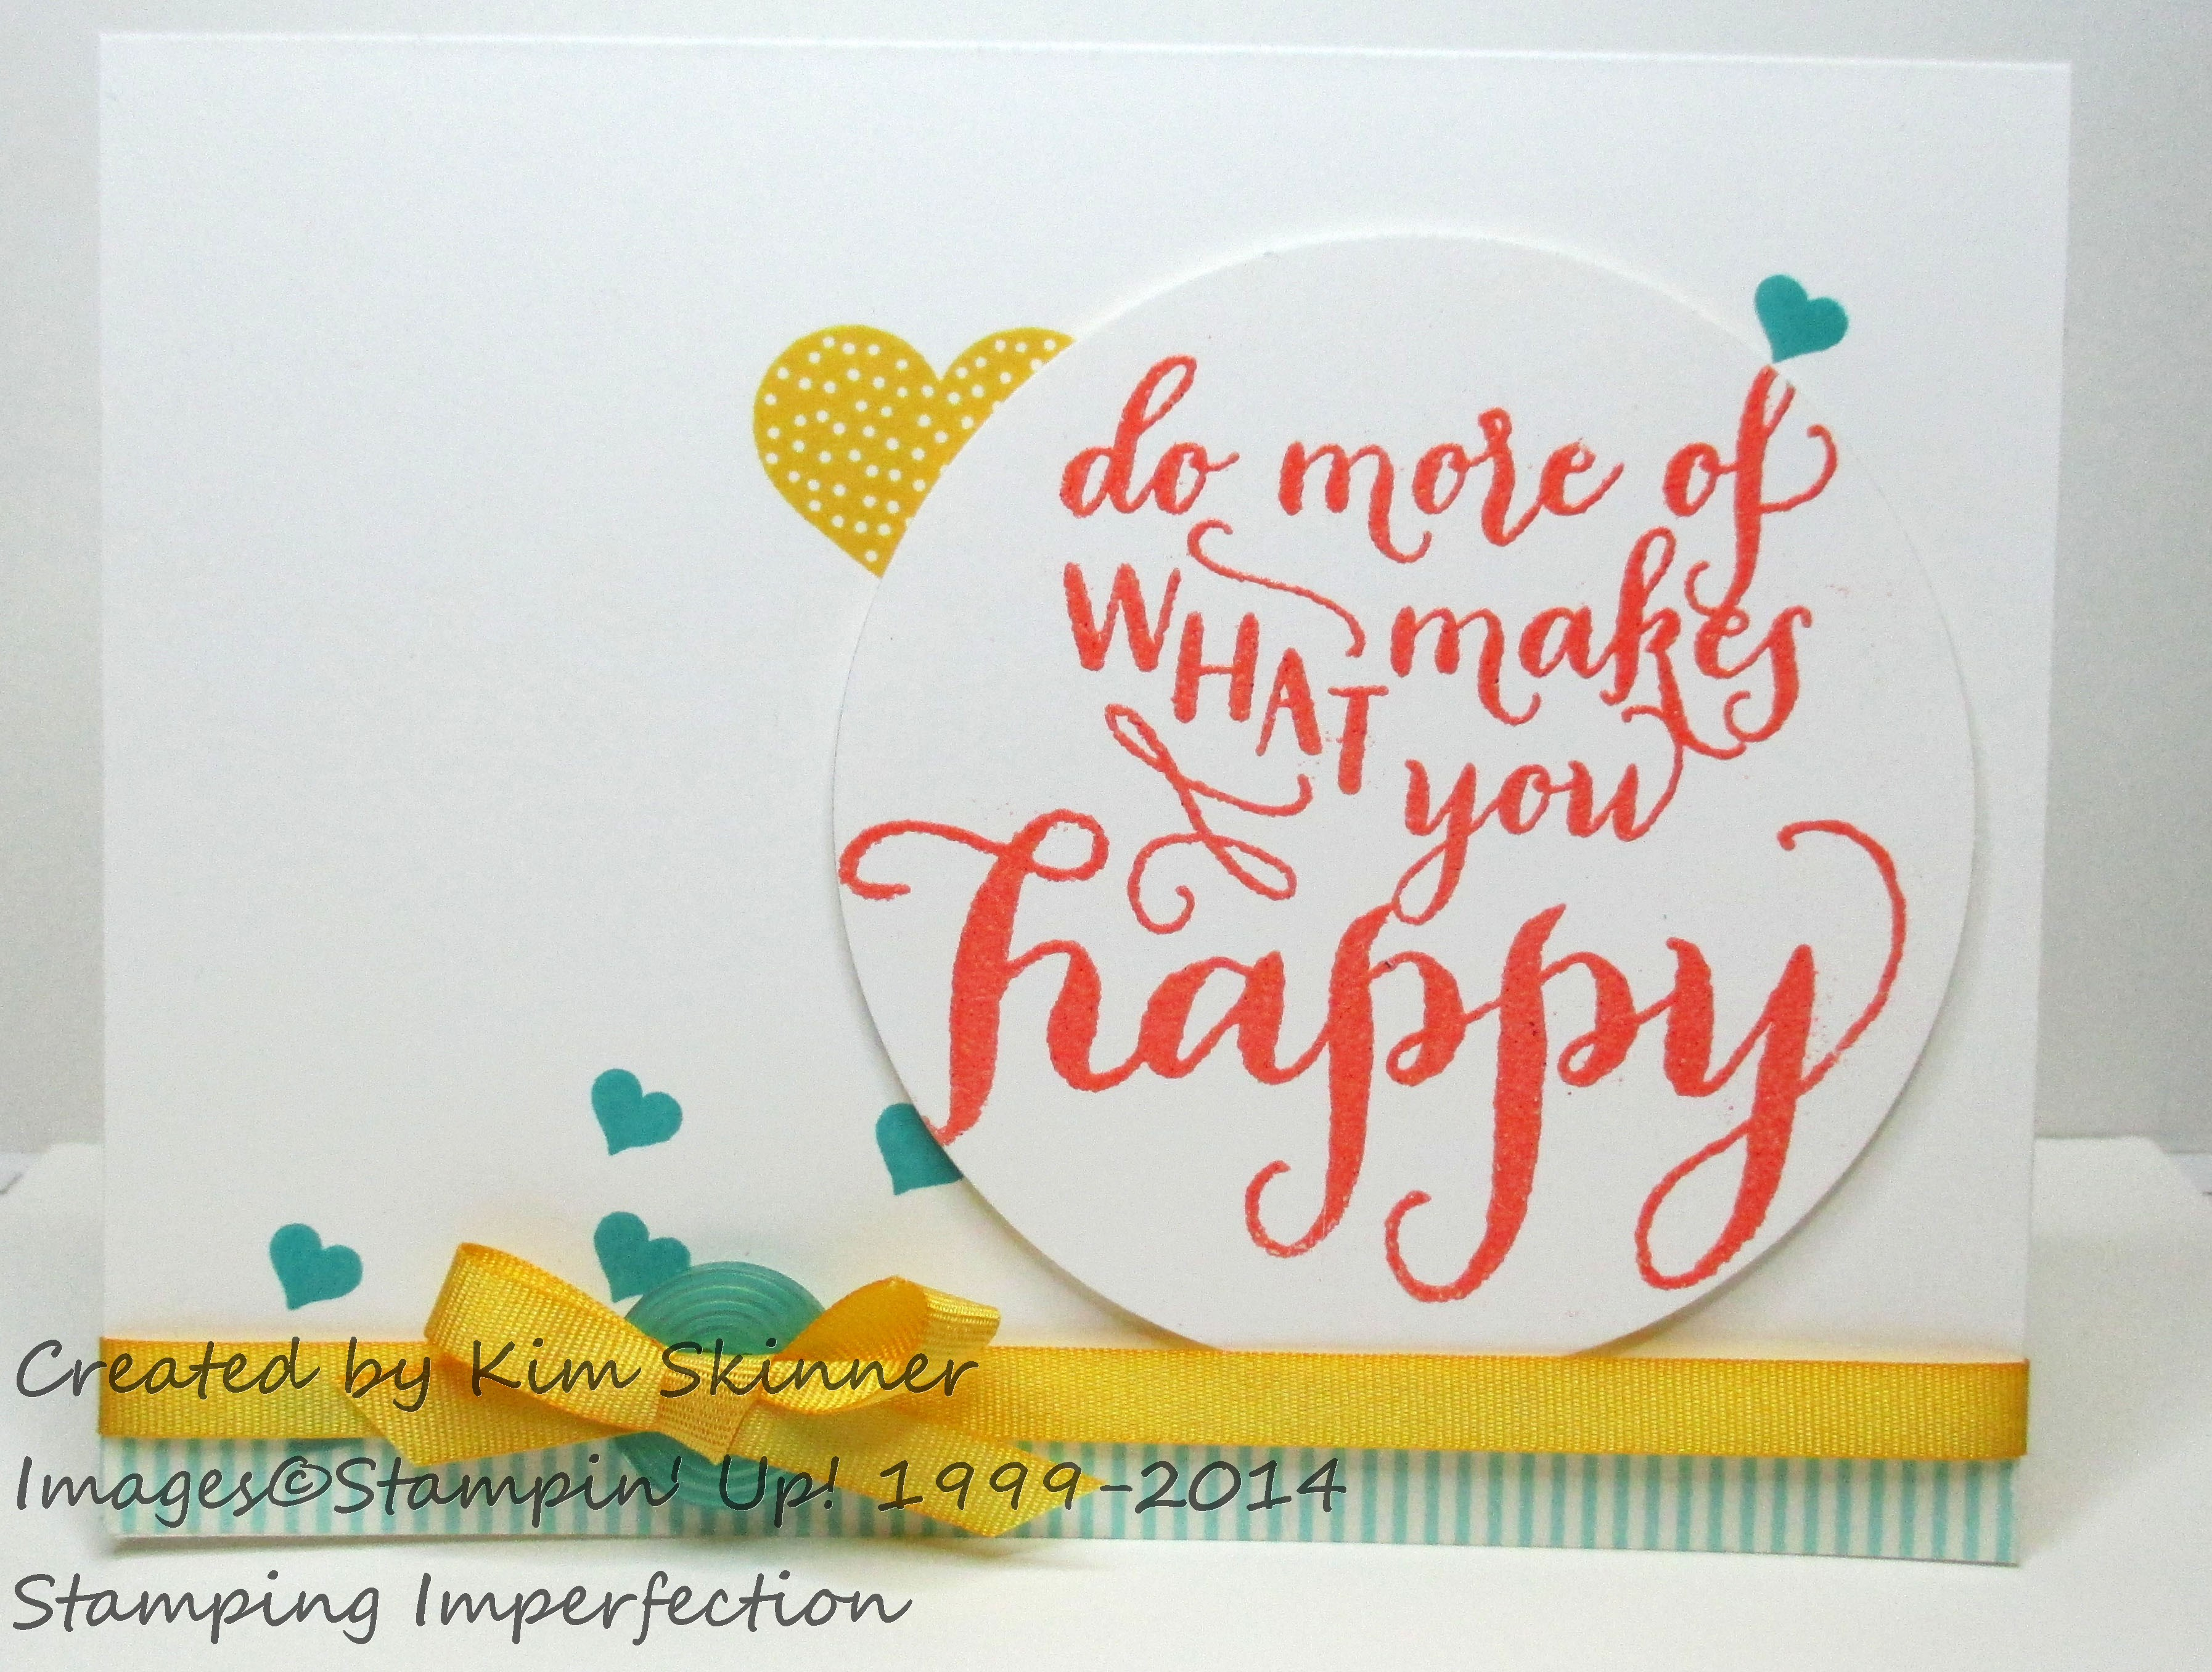 Step up your cards with Stampin' Up! embellishments